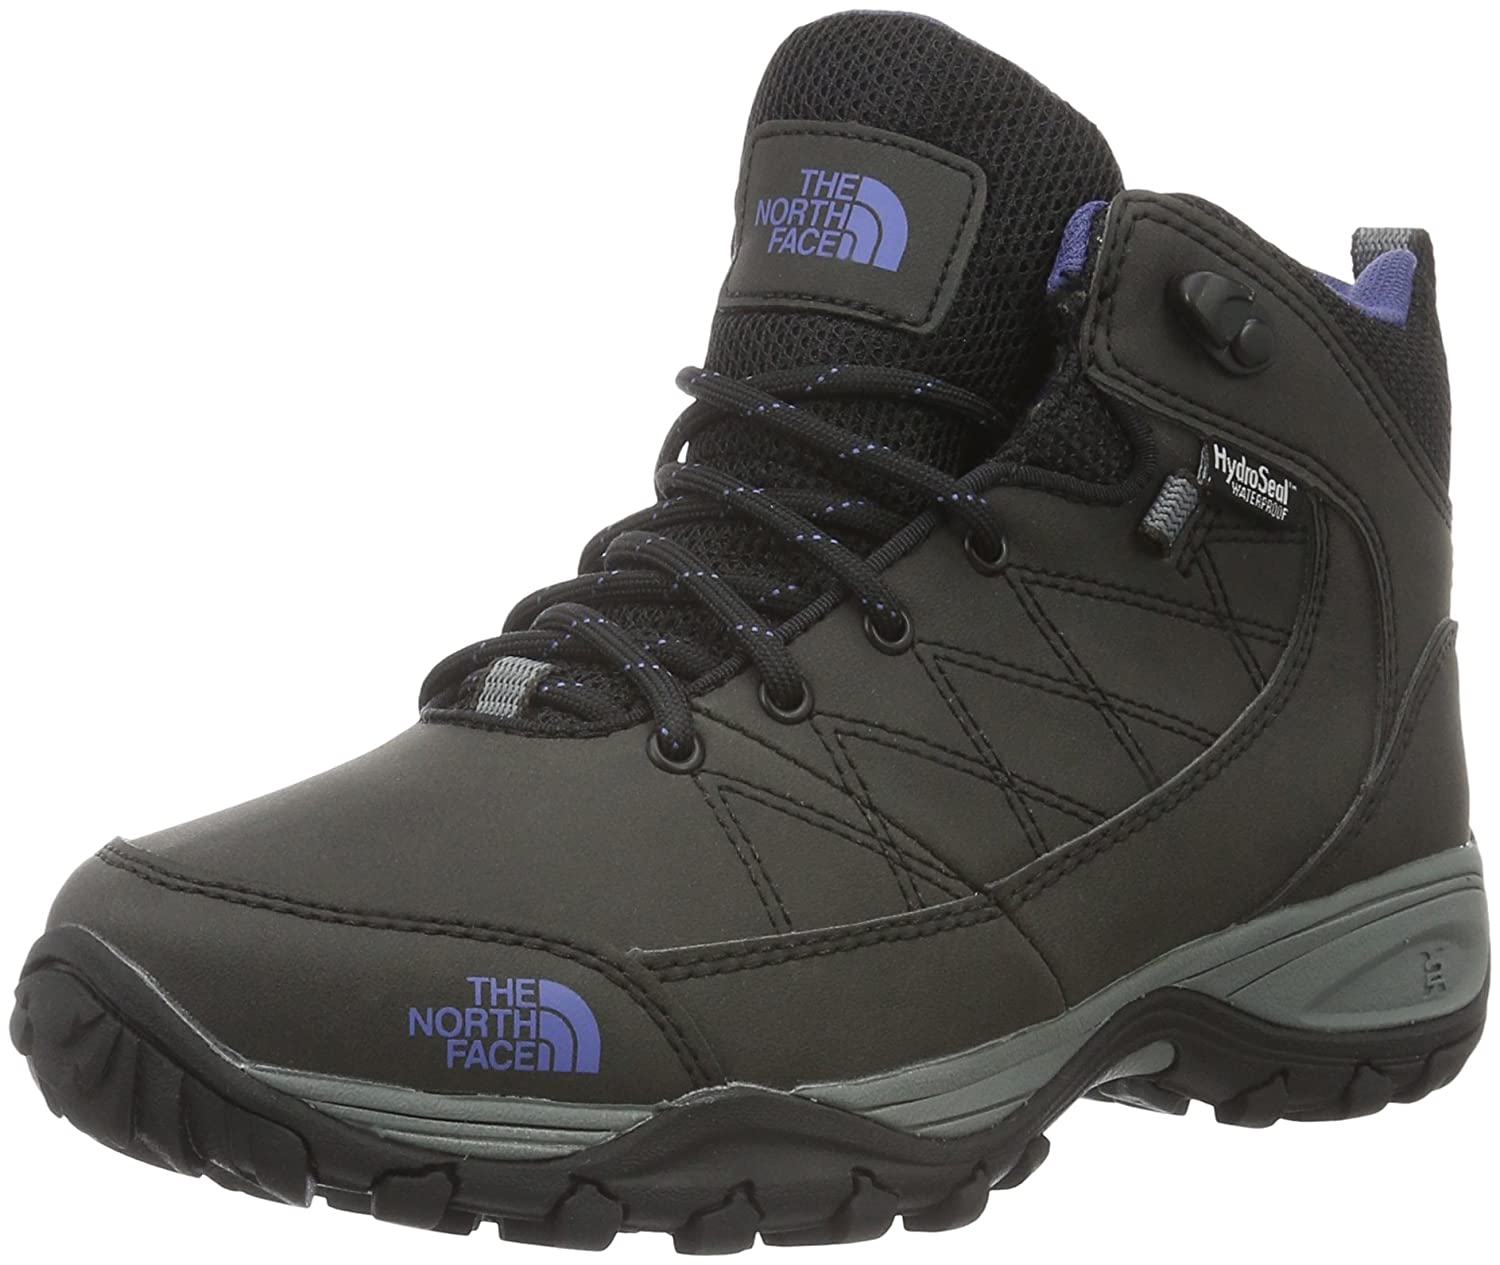 TALLA 37 EU. The North Face T92t3t, Botines para Mujer